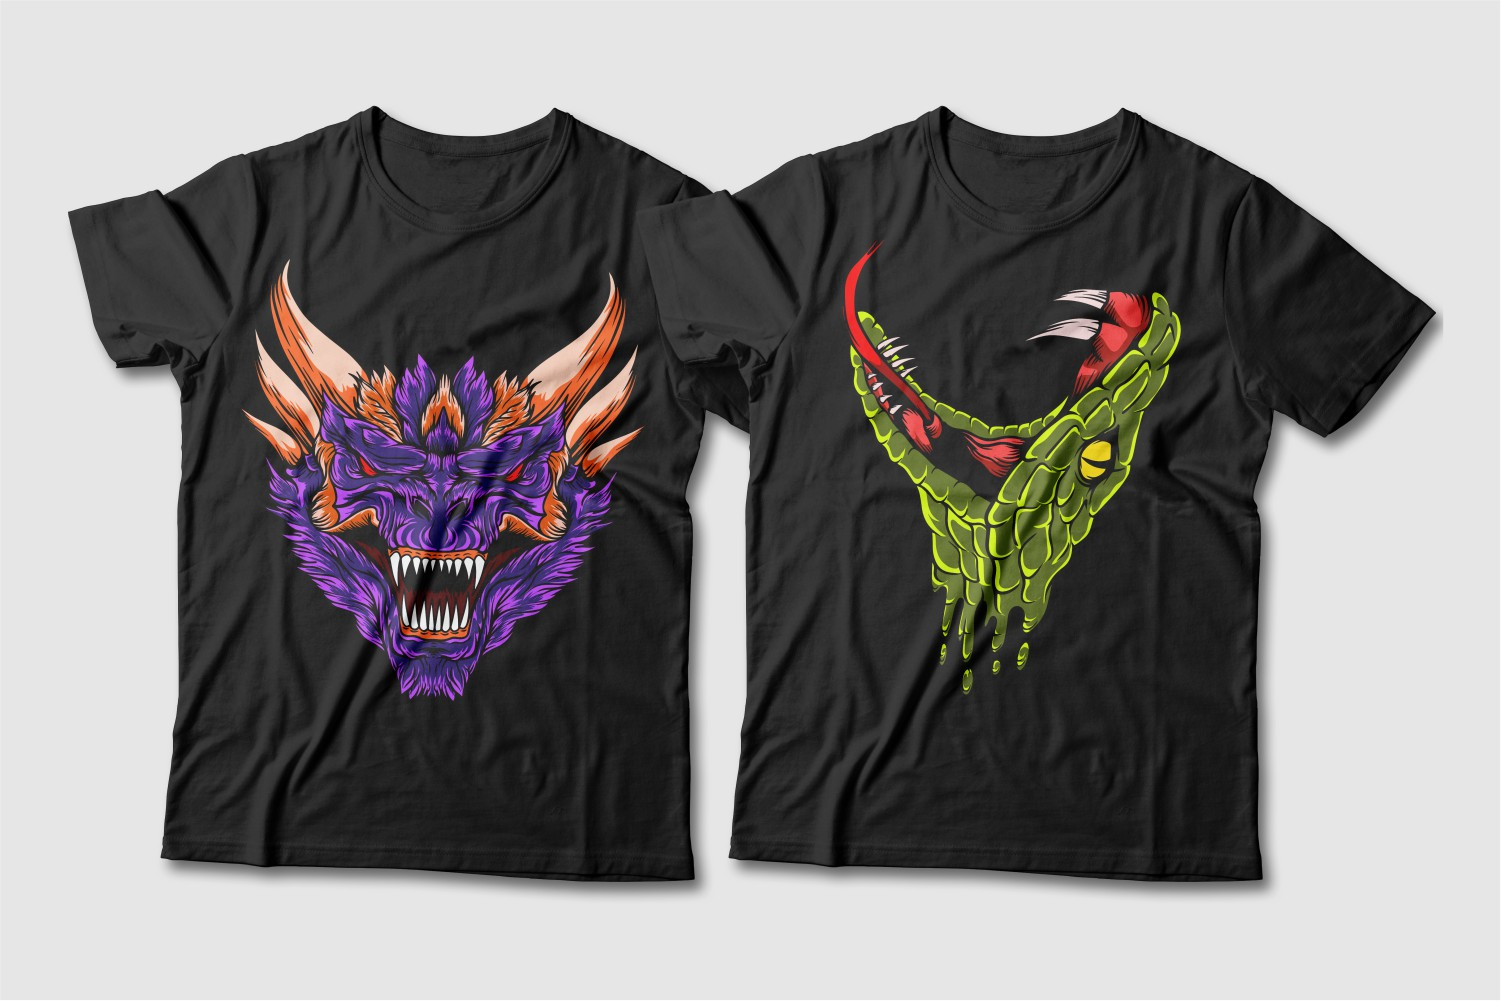 Black crew-neck tees featuring a purple horned dragon and a green snake.